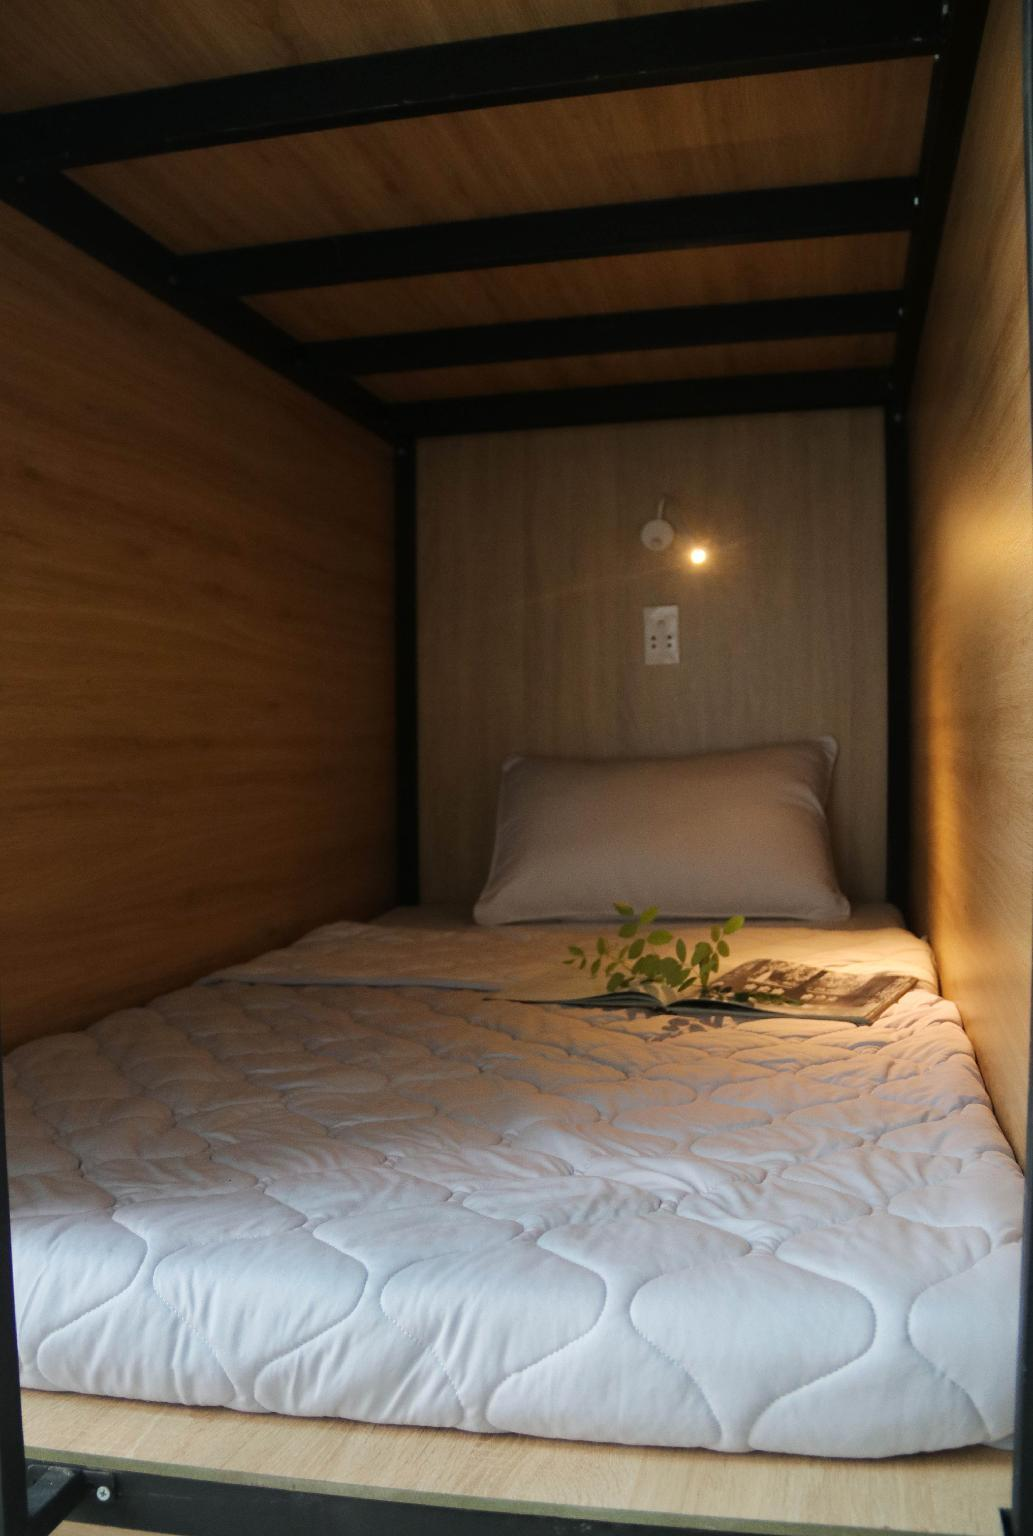 CENTRAL SG DORMROOM COZYandQUITE COUNTRY VN STYLE